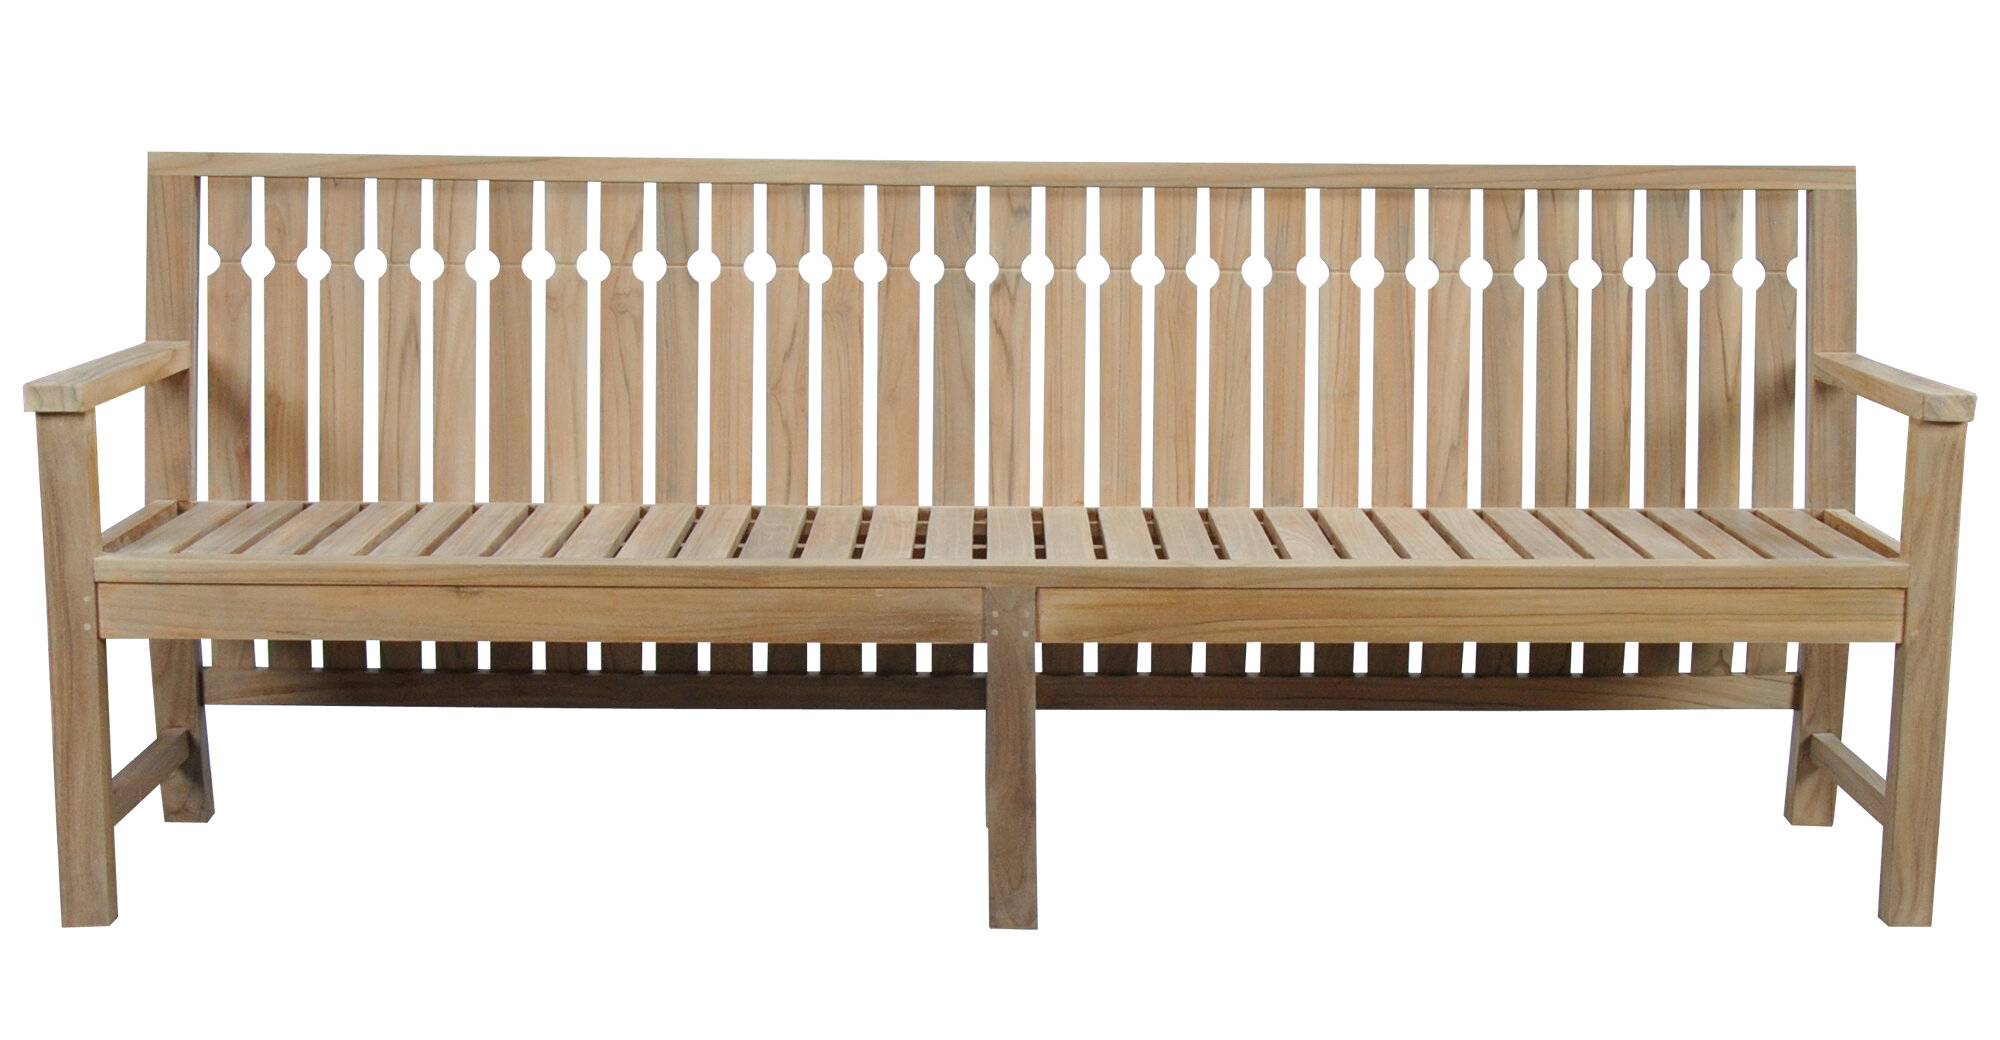 Vasser Long Teak Garden Bench Regarding Hampstead Teak Garden Benches (View 6 of 25)